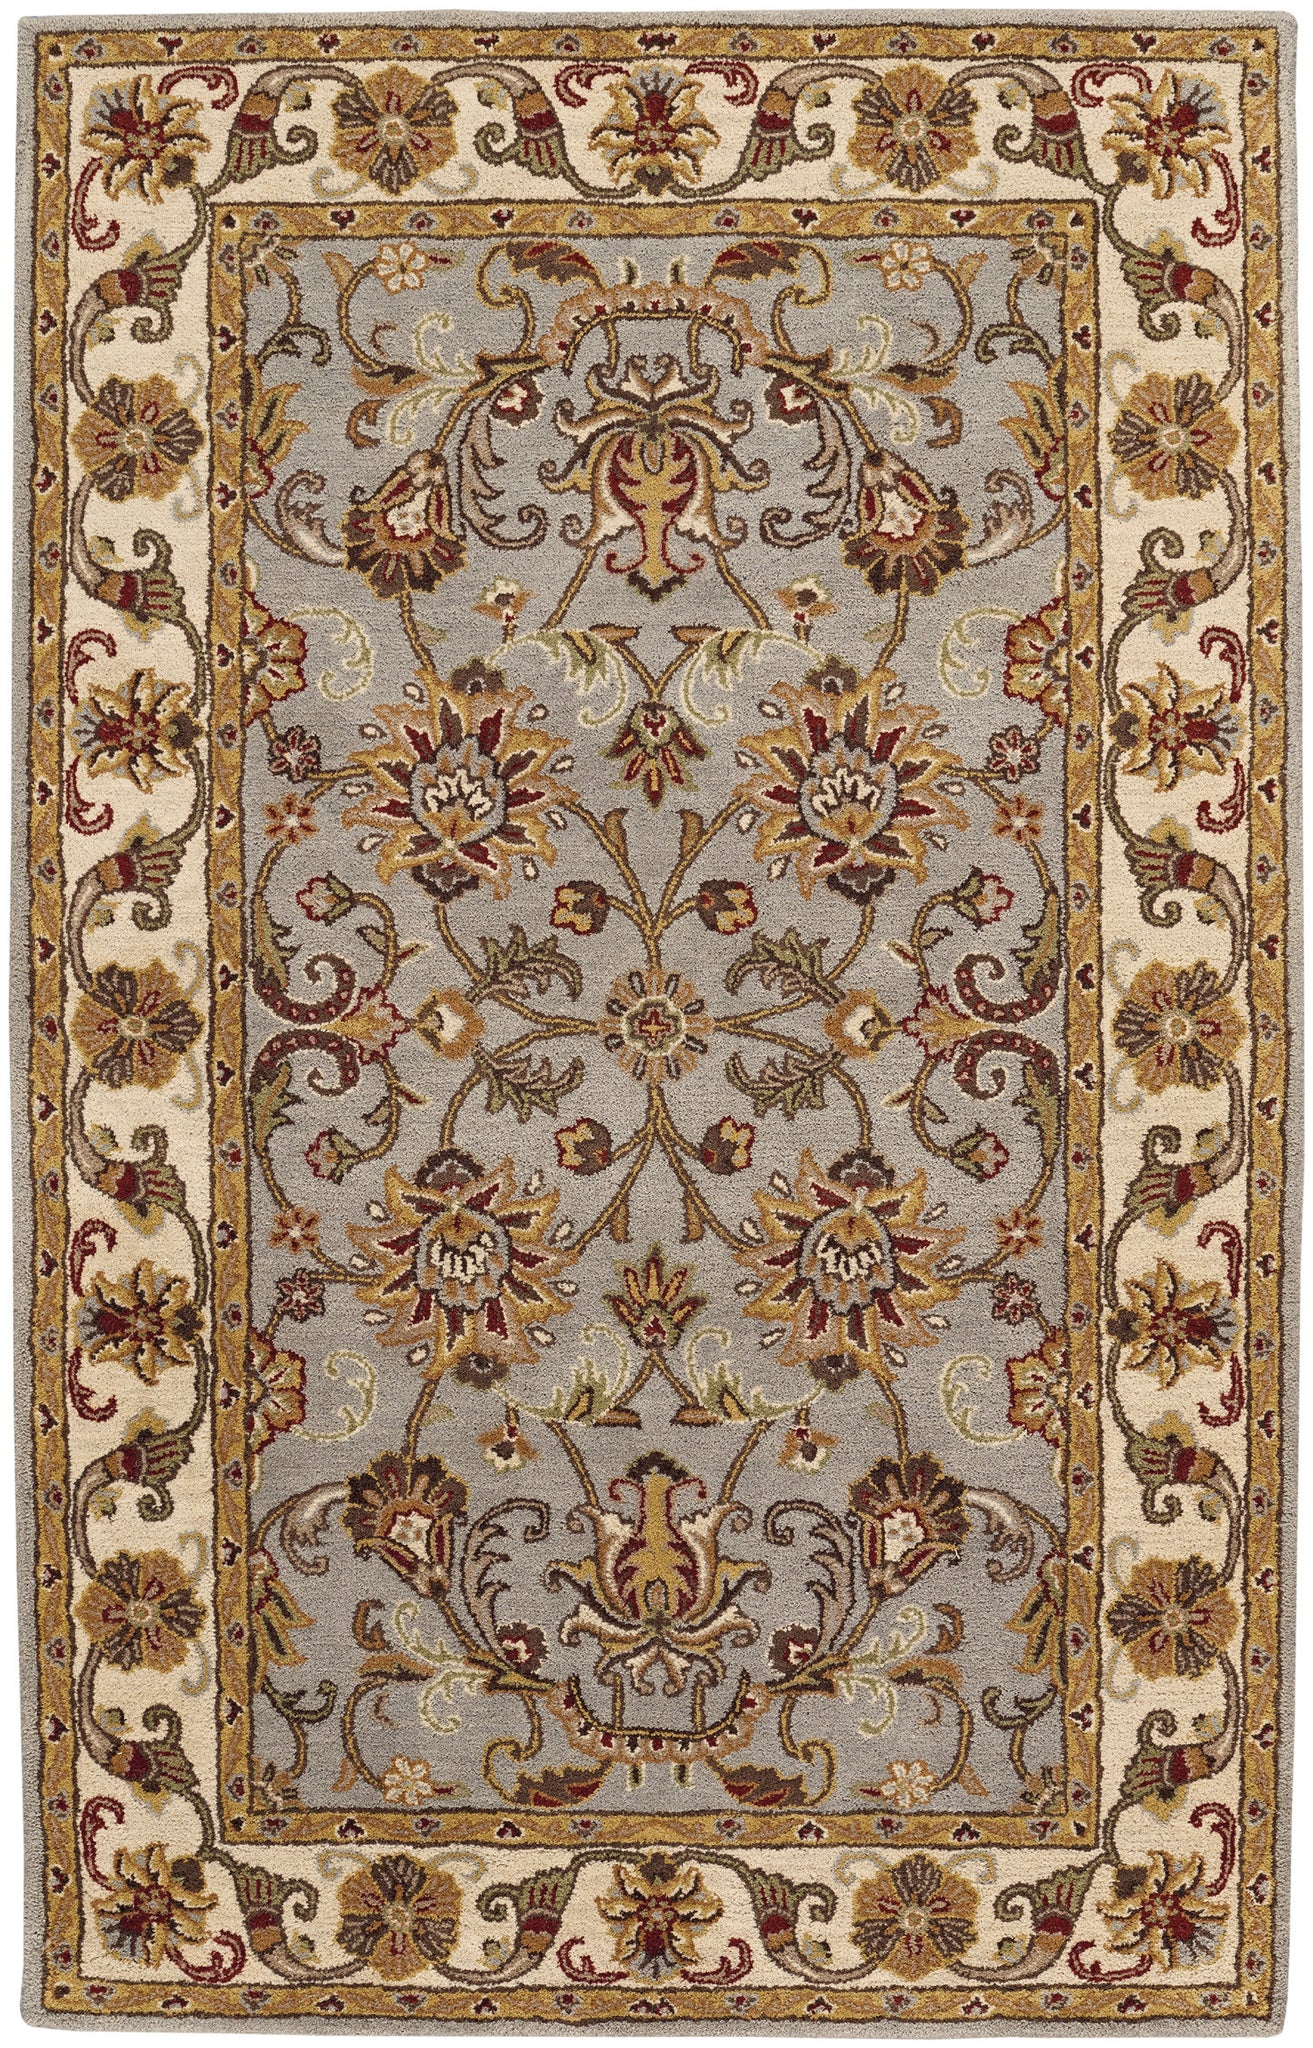 Capel Guilded 9205 Smoke 300 Area Rug main image